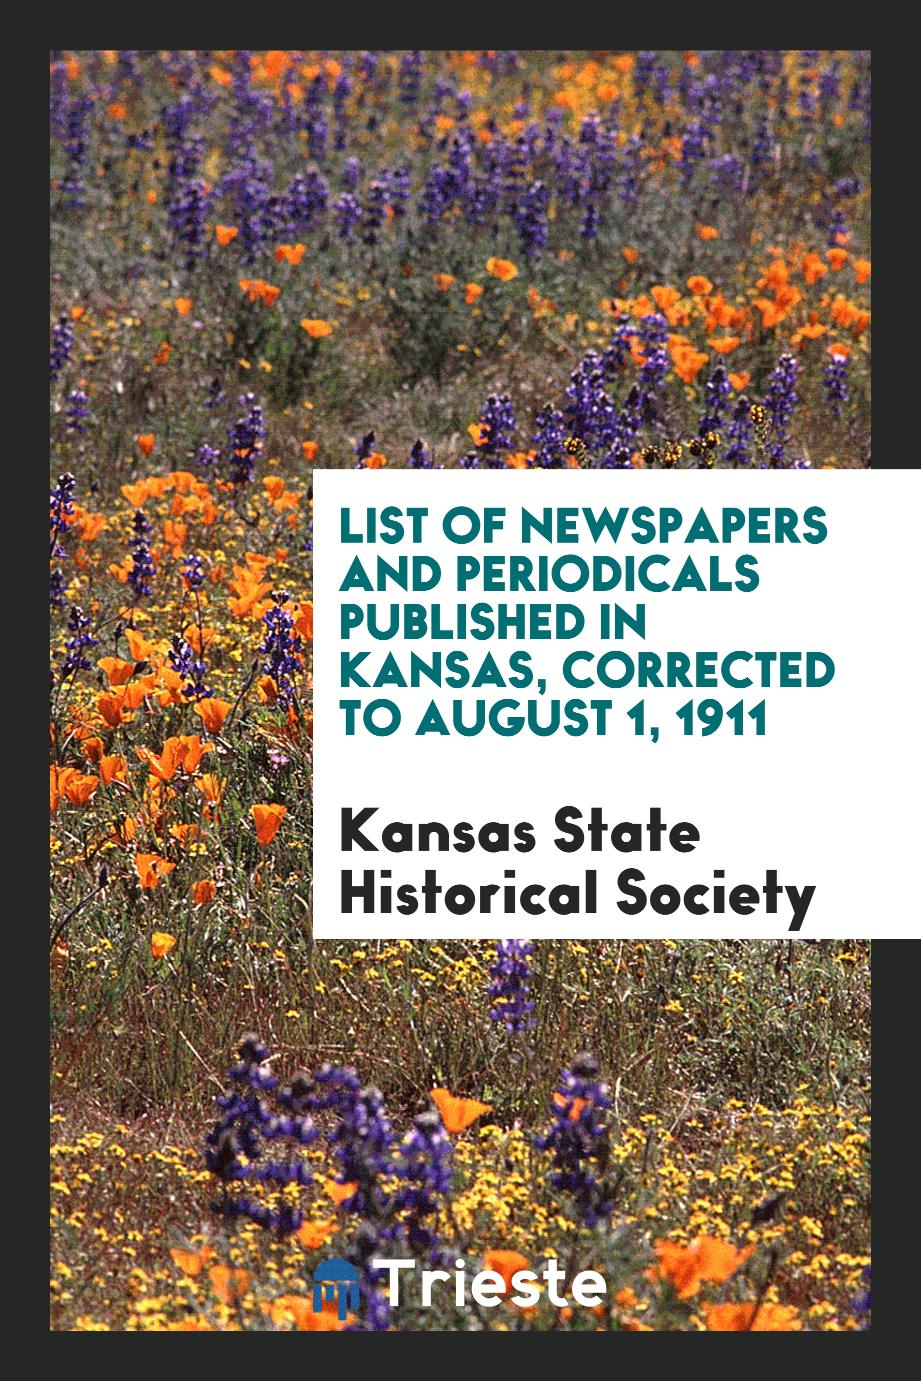 List of Newspapers and Periodicals Published in Kansas, Corrected to August 1, 1911